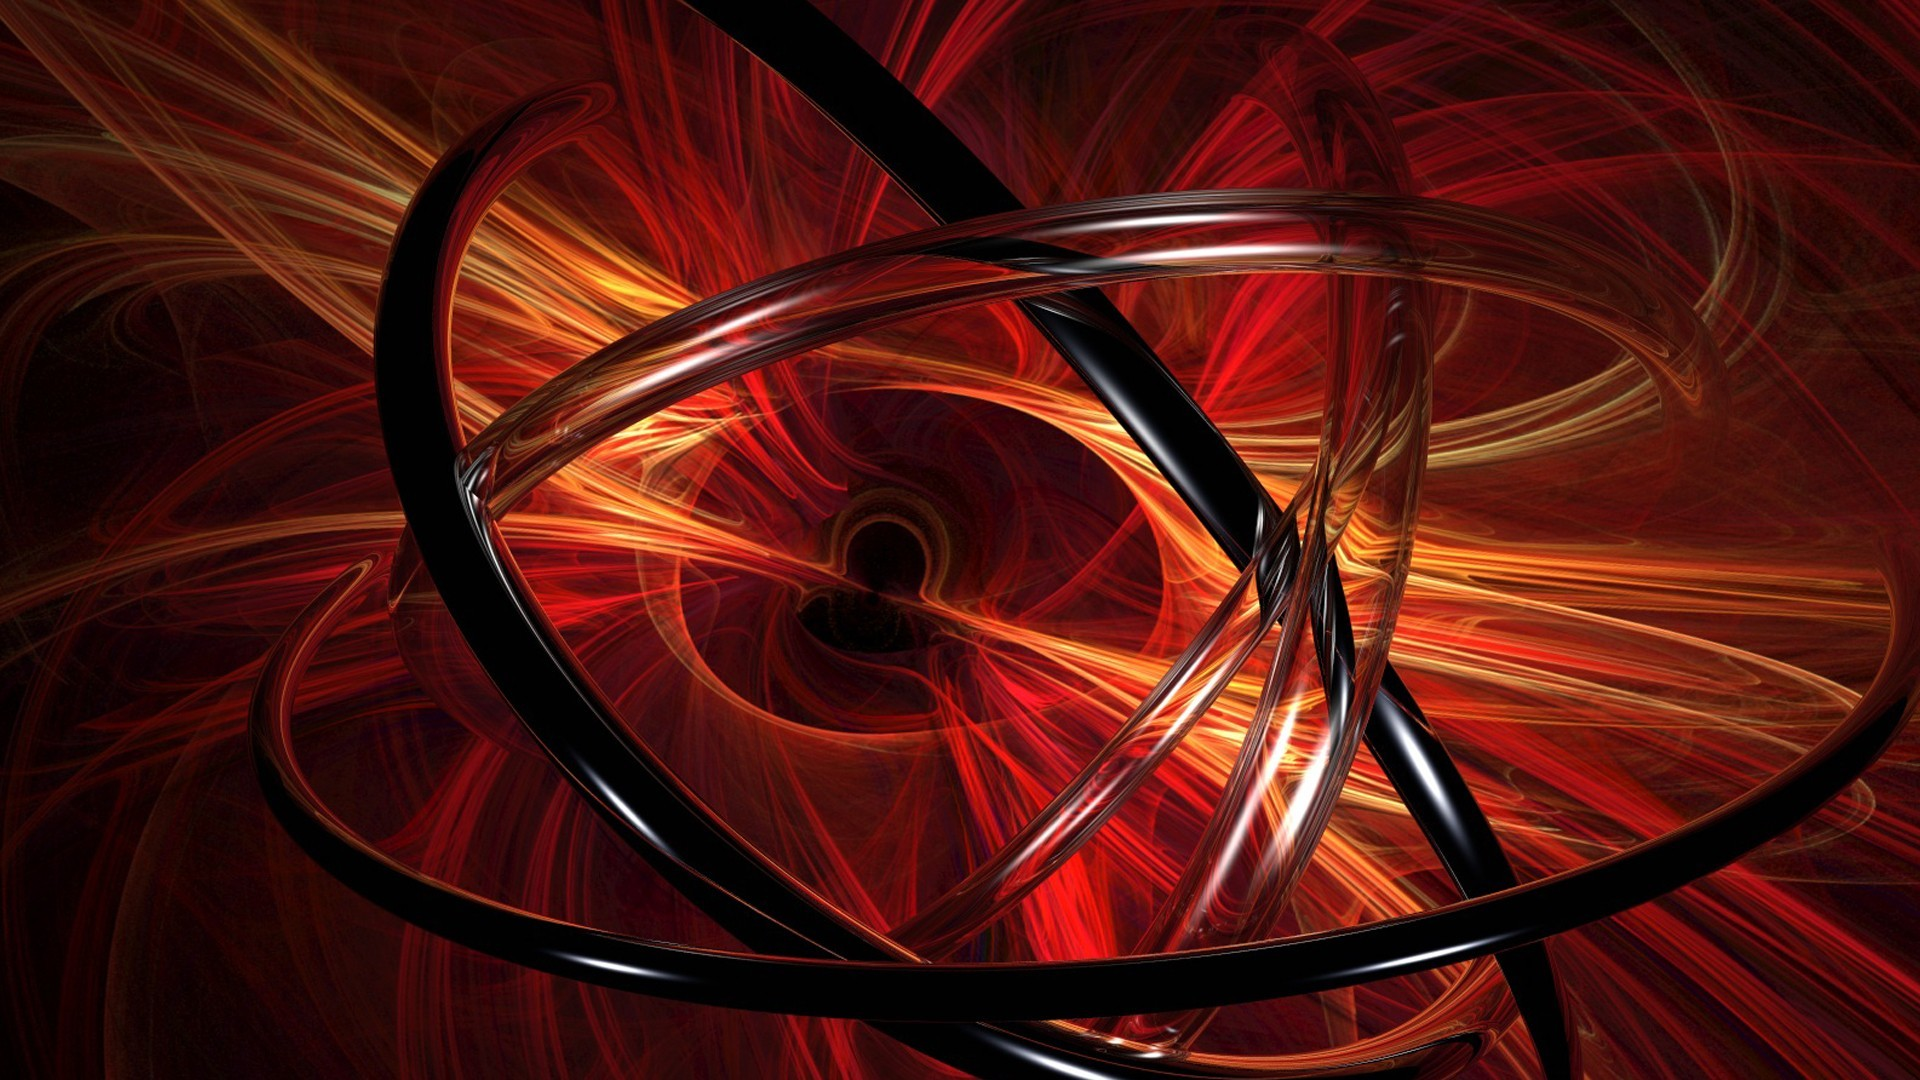 1920x1080 Abstract Red 3d Renders Graphics Vector Art Wallpaper At 3d Wallpapers